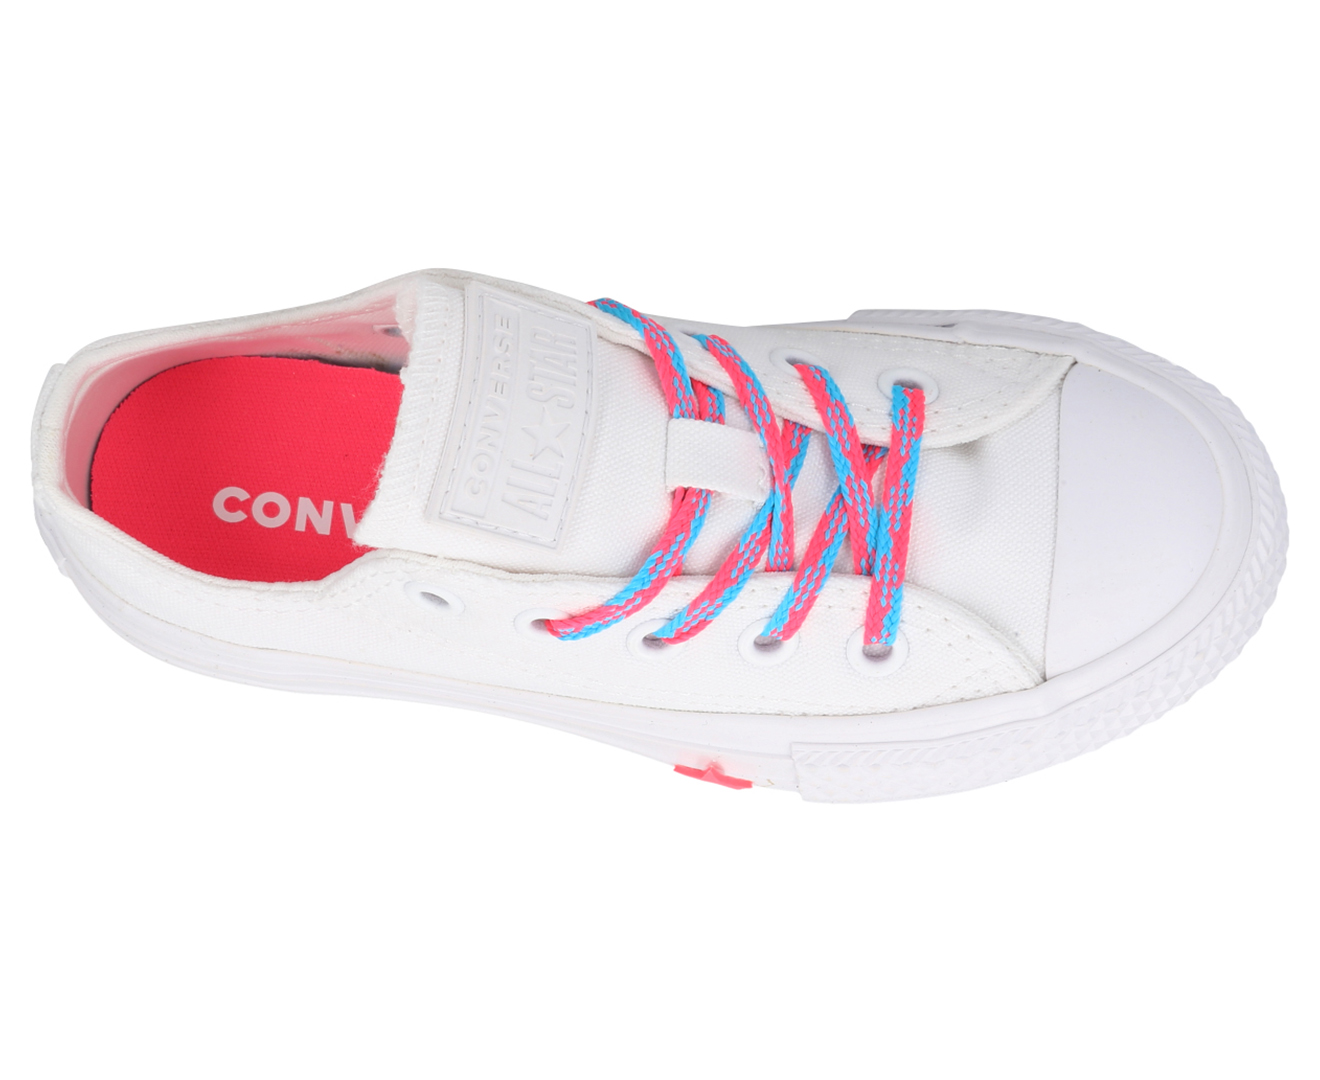 Converse Girls' Chuck Taylor All Star Glow Up Ox Sneakers